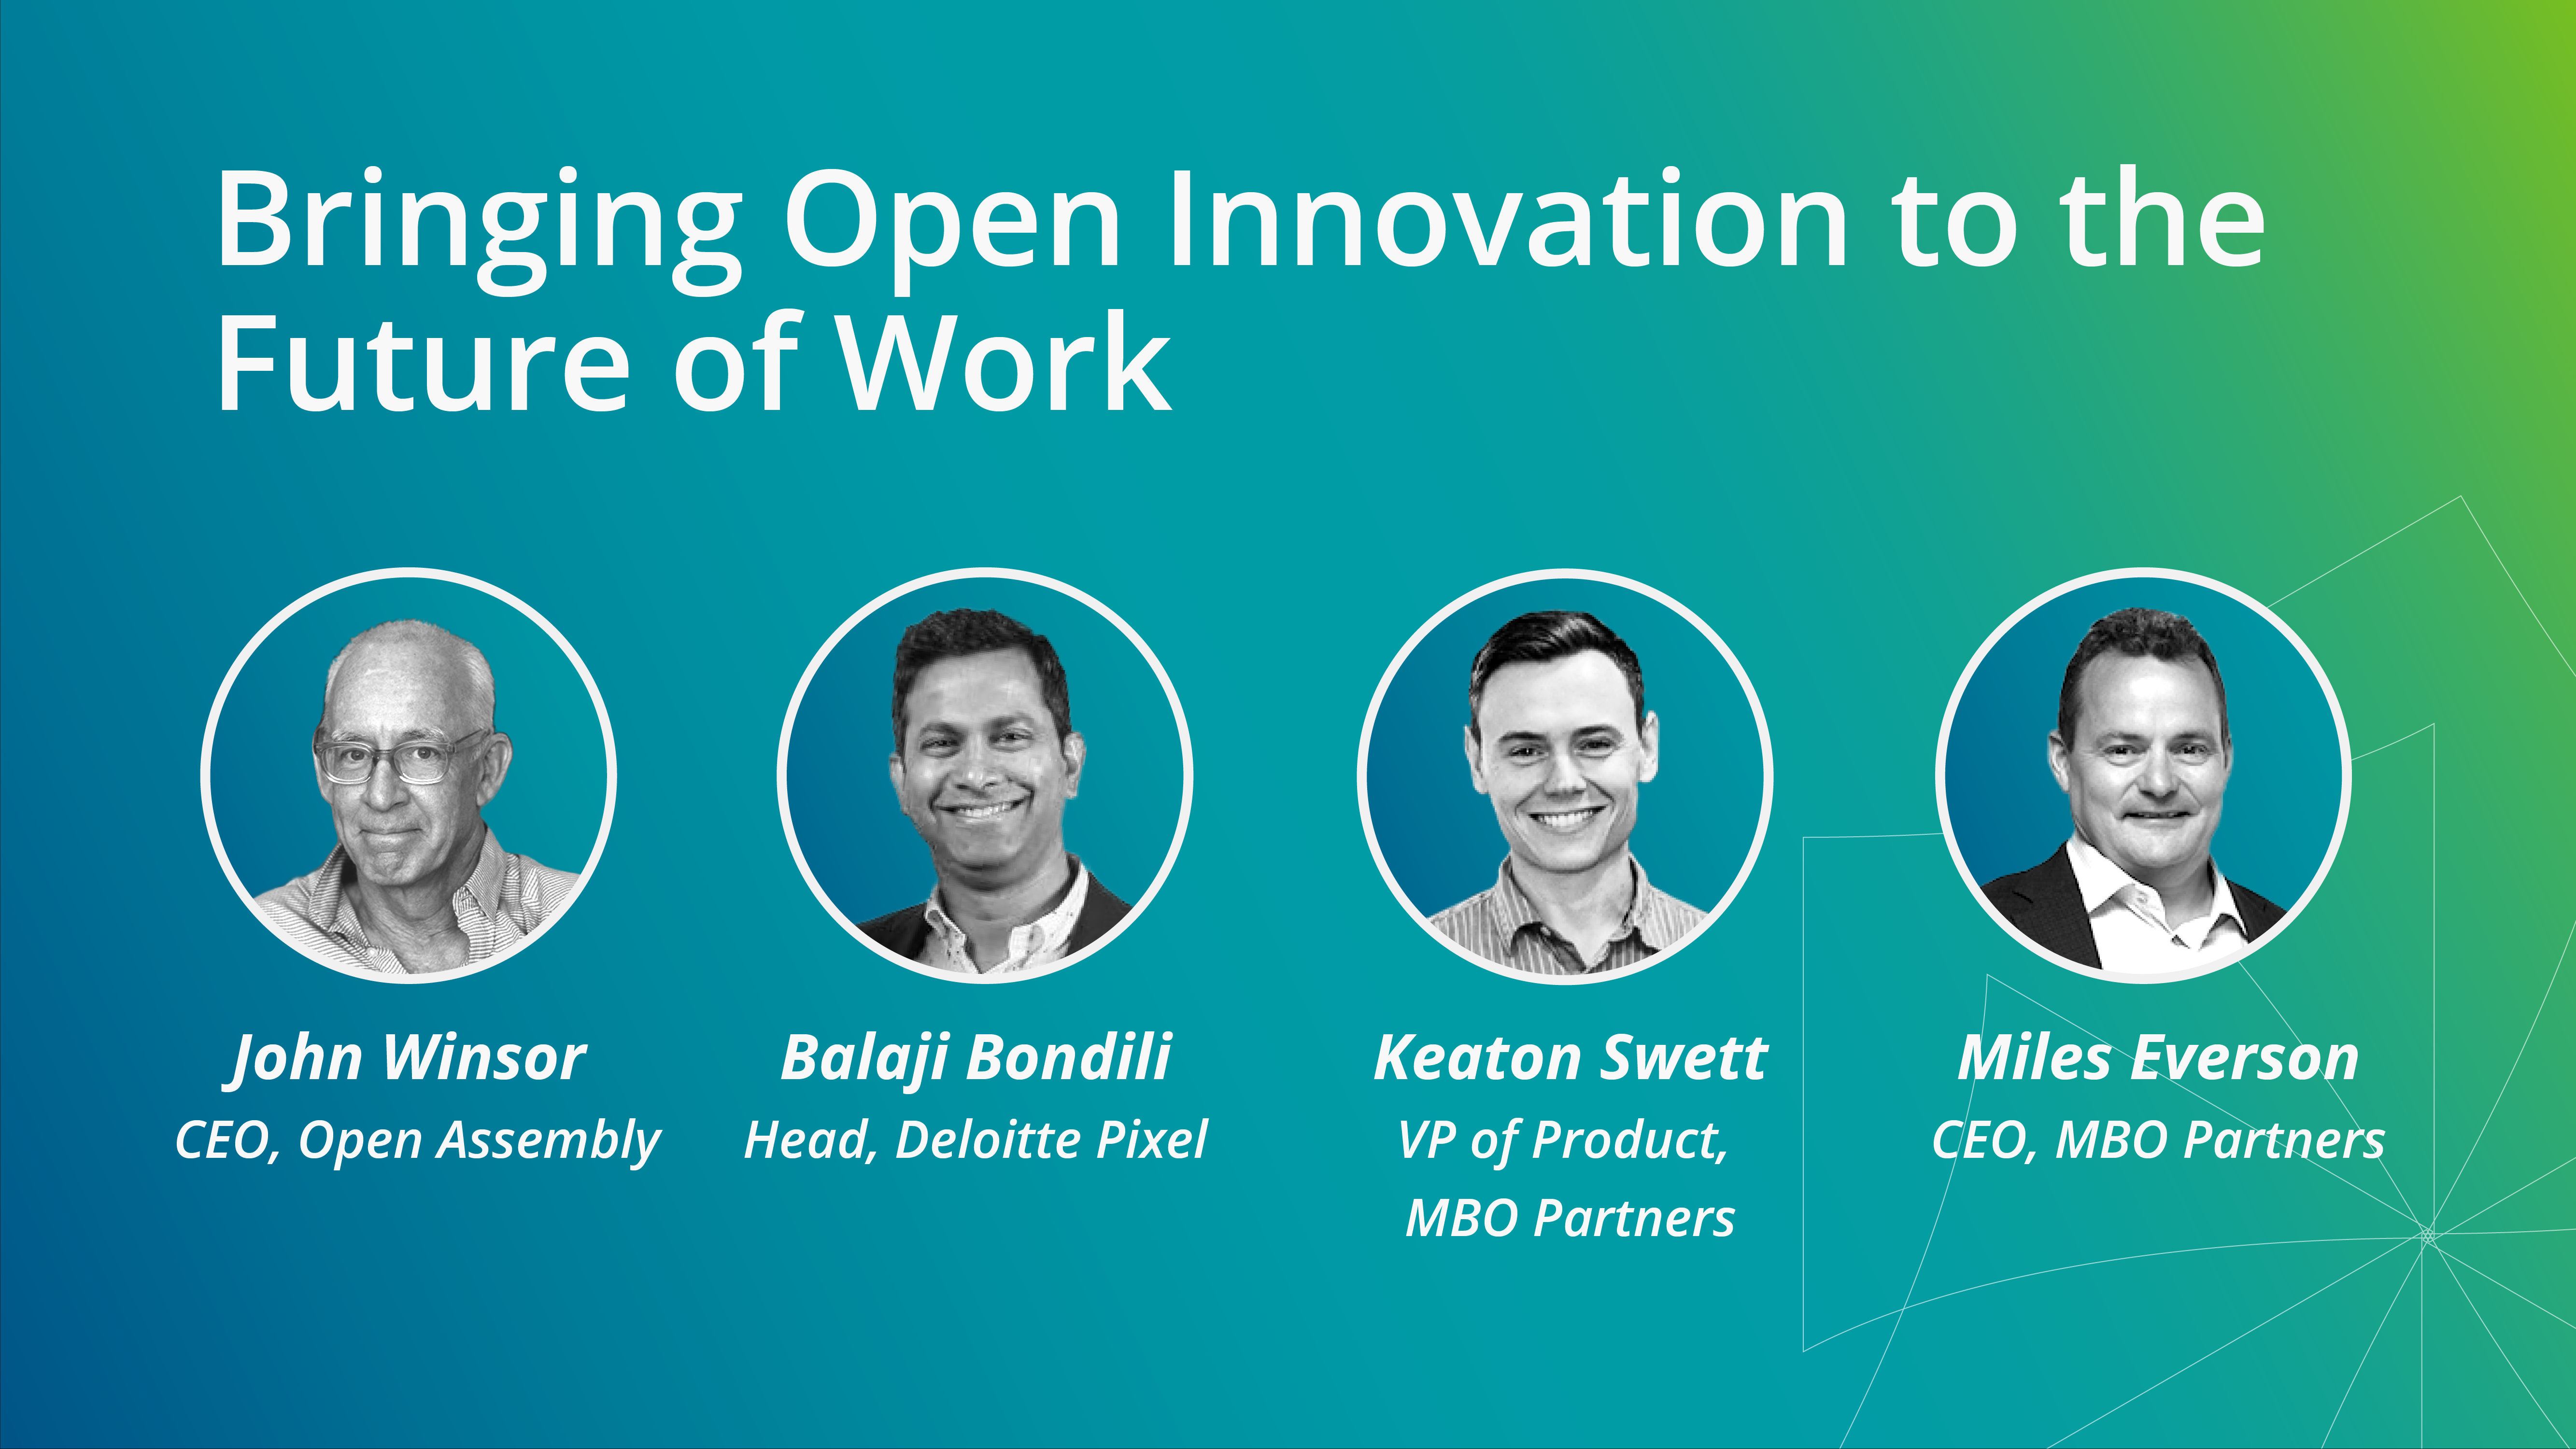 Bringing Open Innovation to the Future of Work